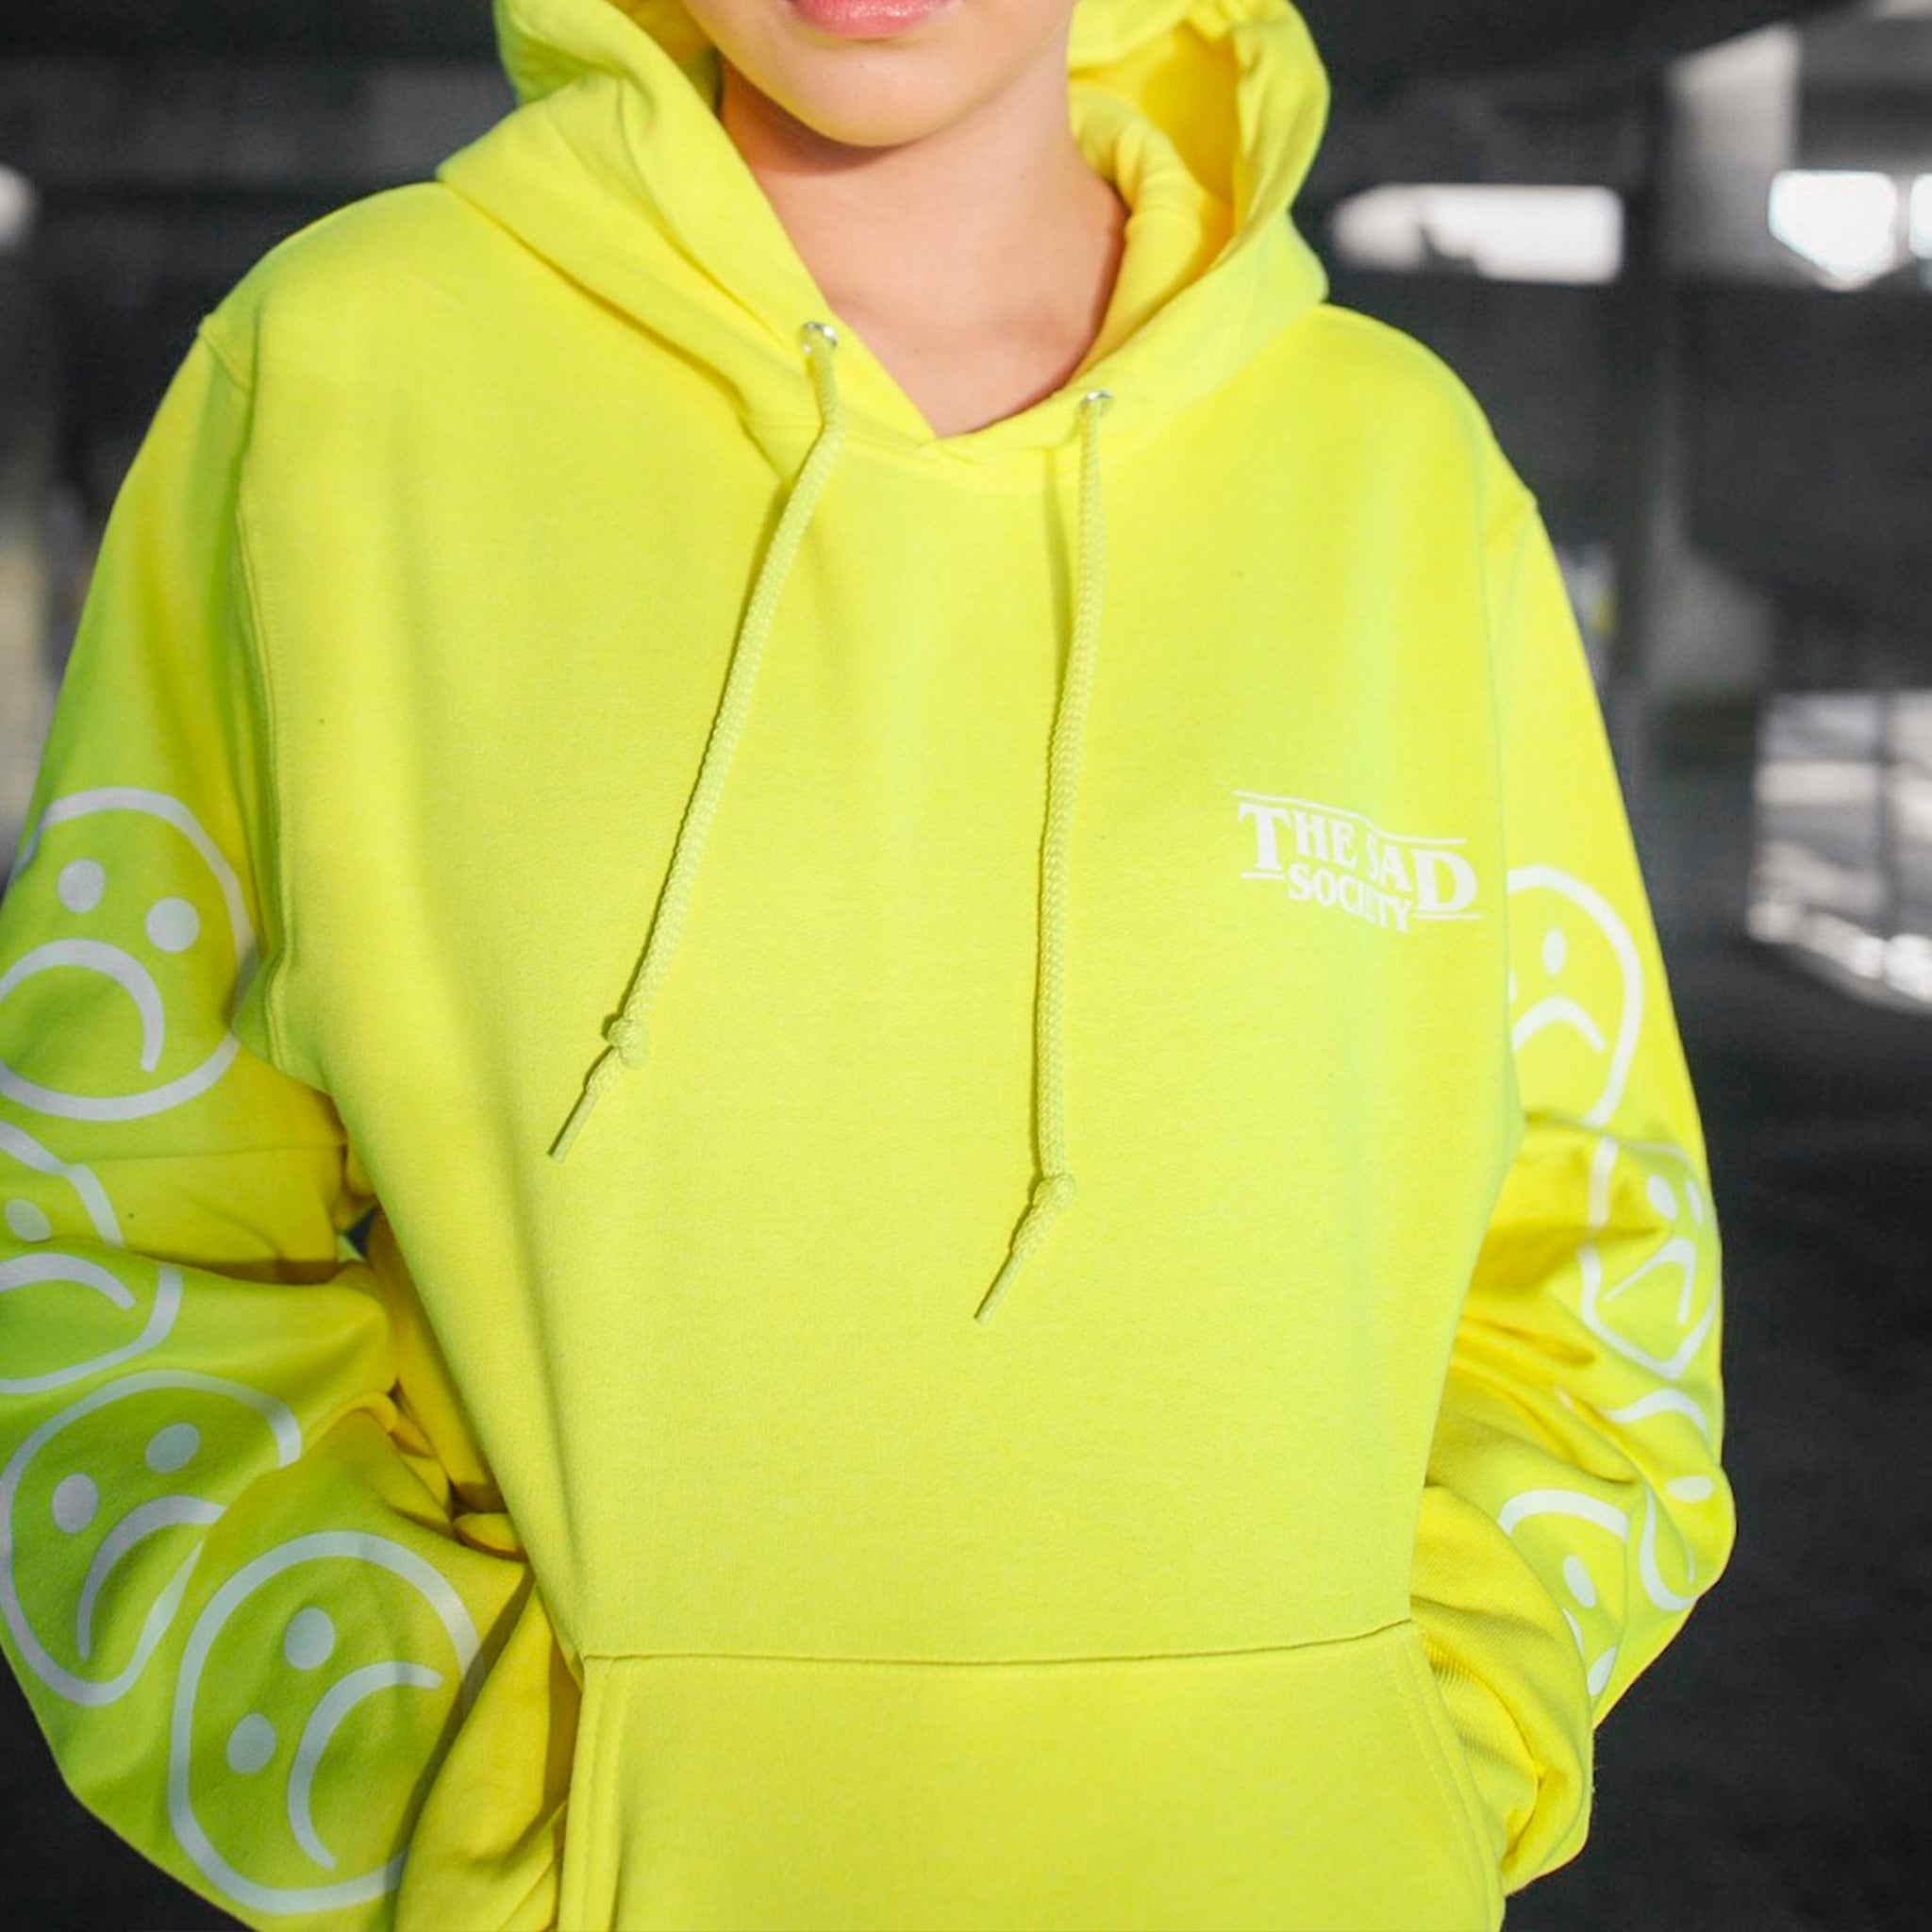 Neon Sad Face Sleeved Hoodie